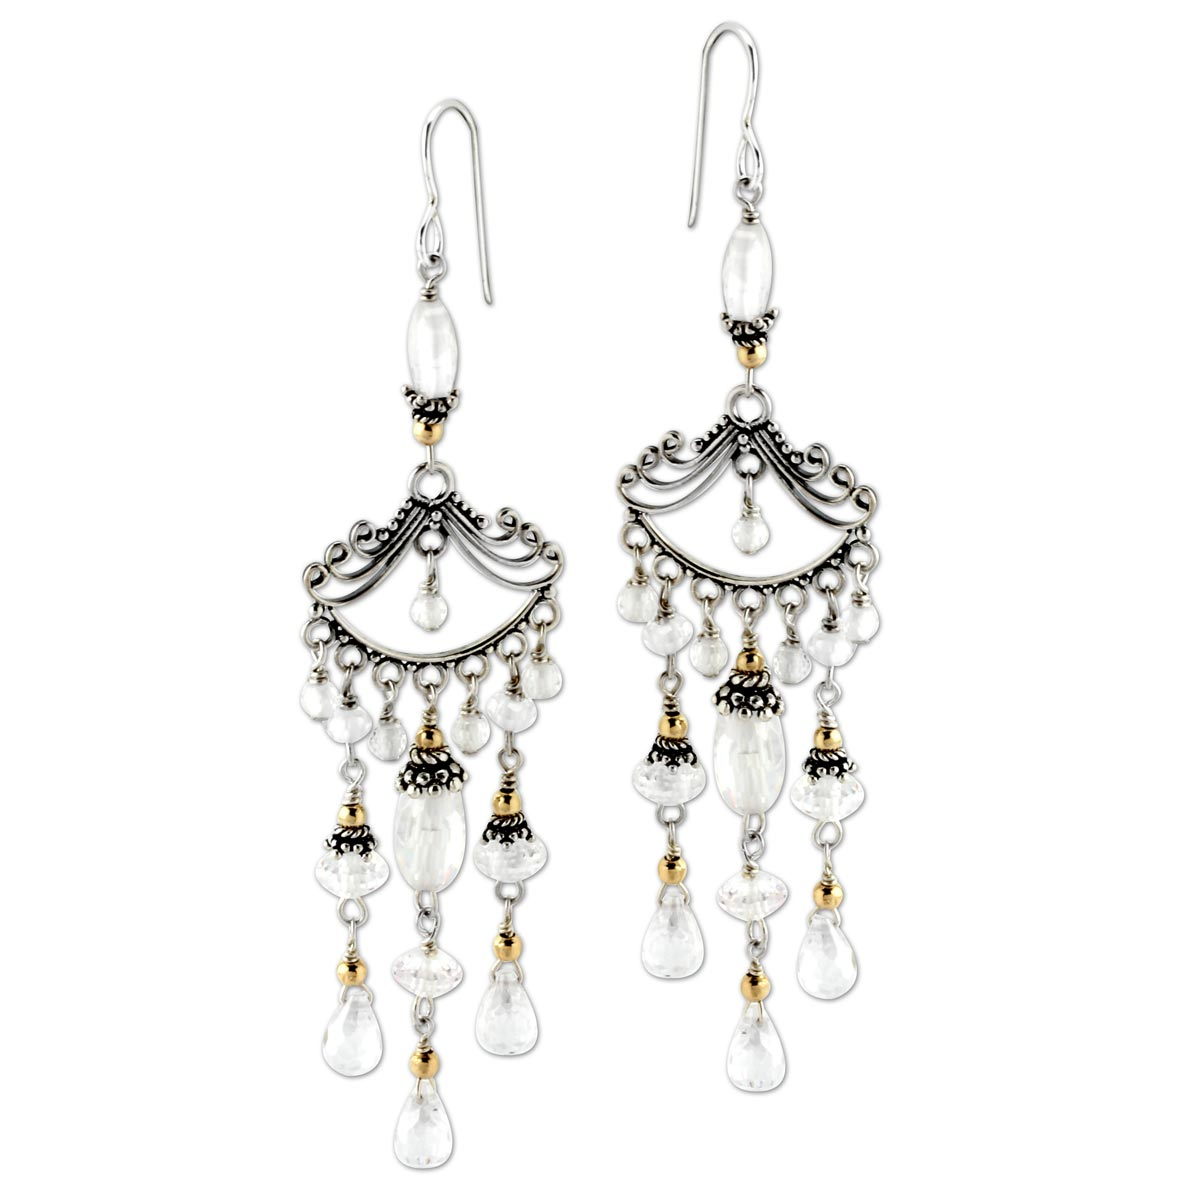 342879-Clear CZ Chandelier Earrings